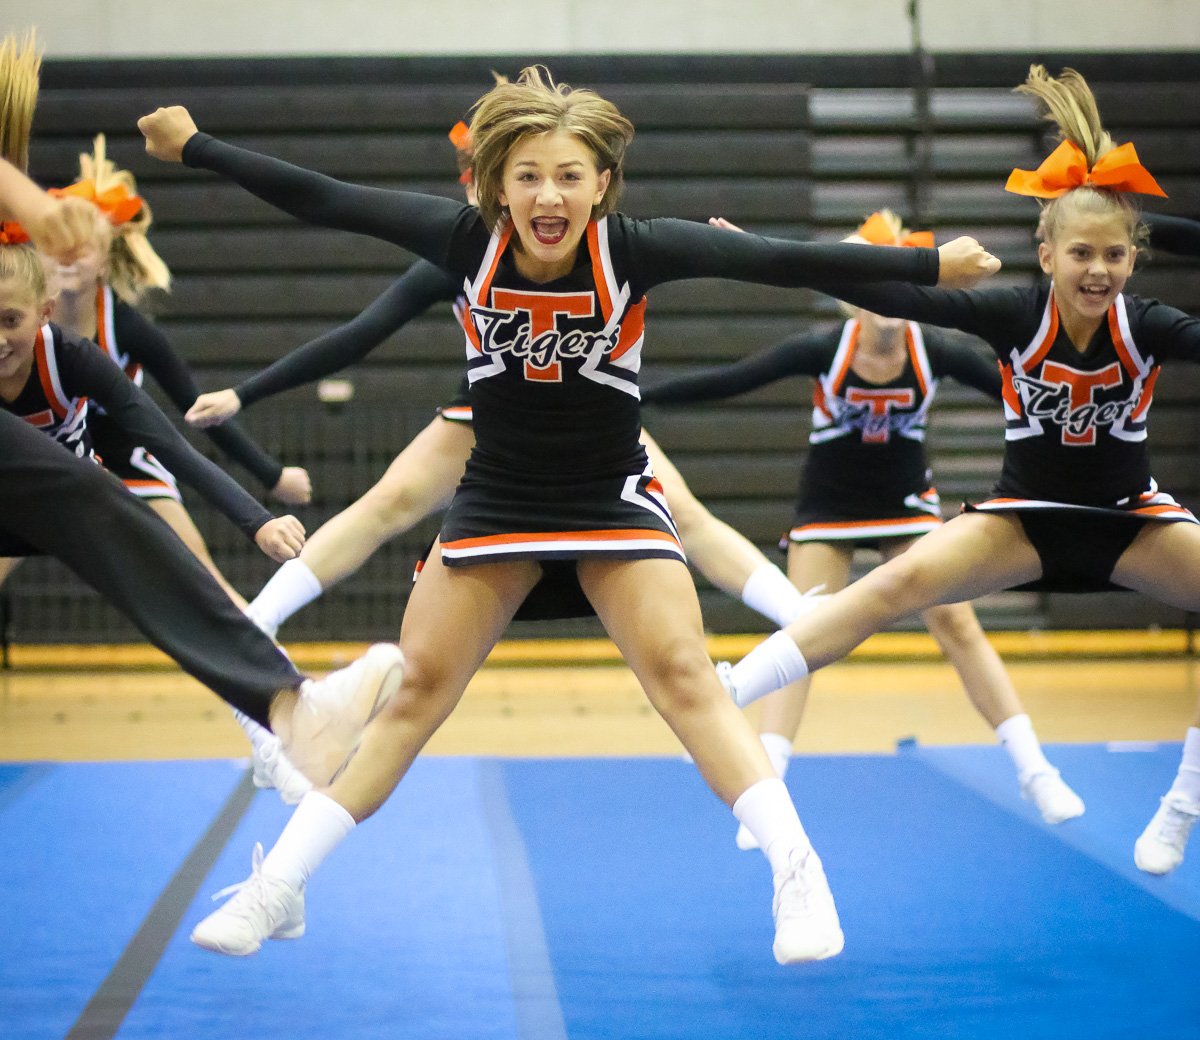 Photos: Cheer Showcase 2016 – Middle School